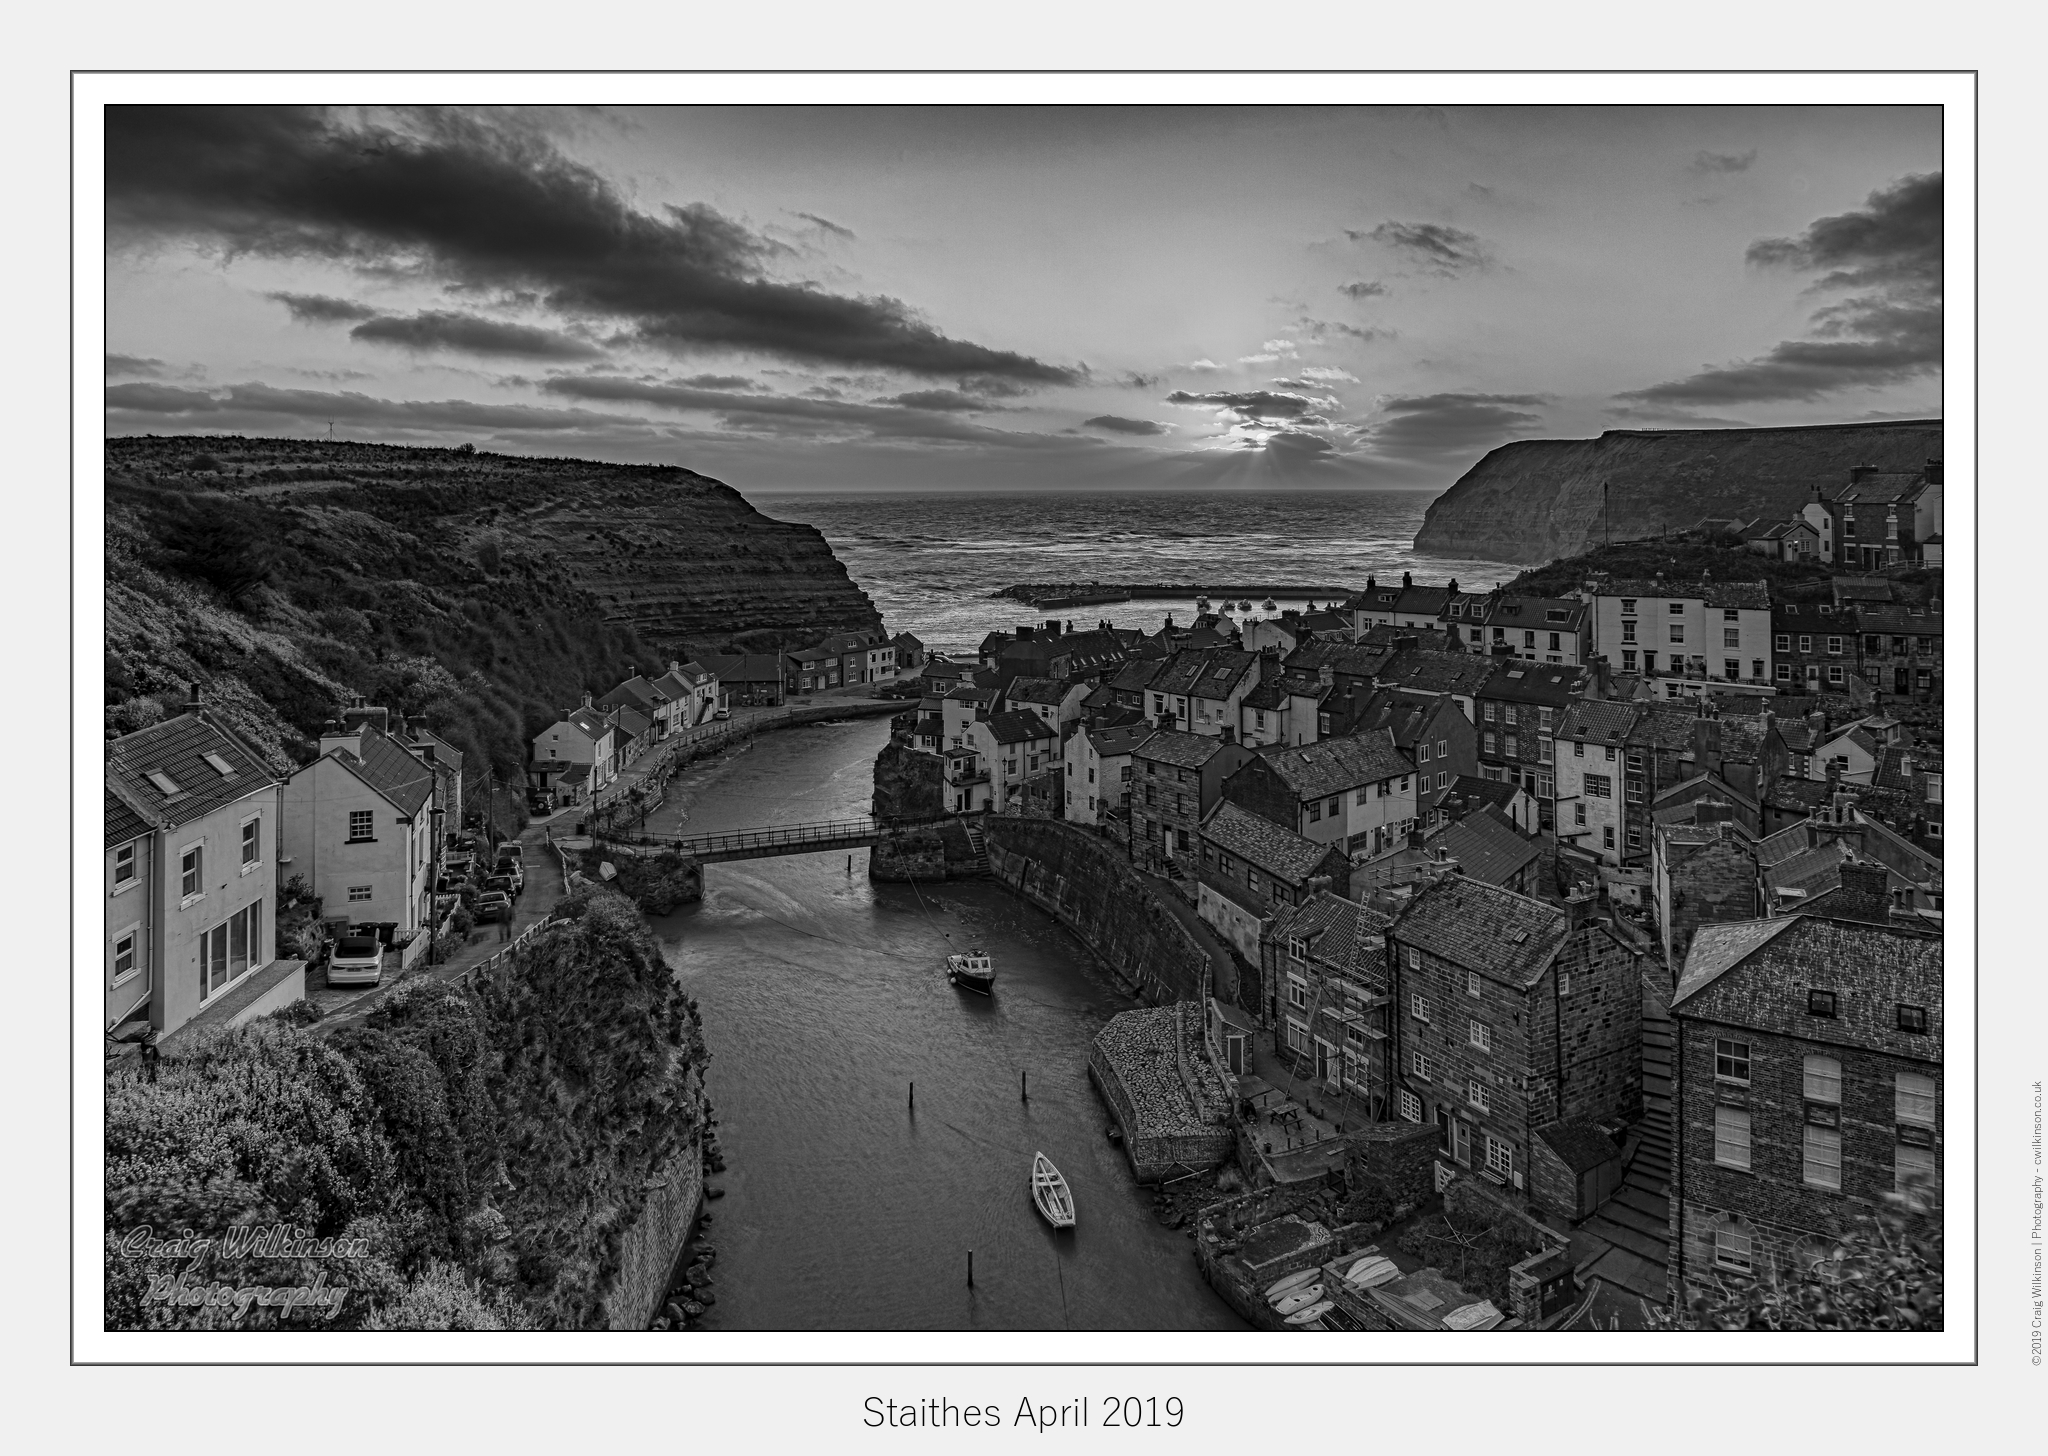 01-Staithes April 2019 - (5739 x 3826).jpg